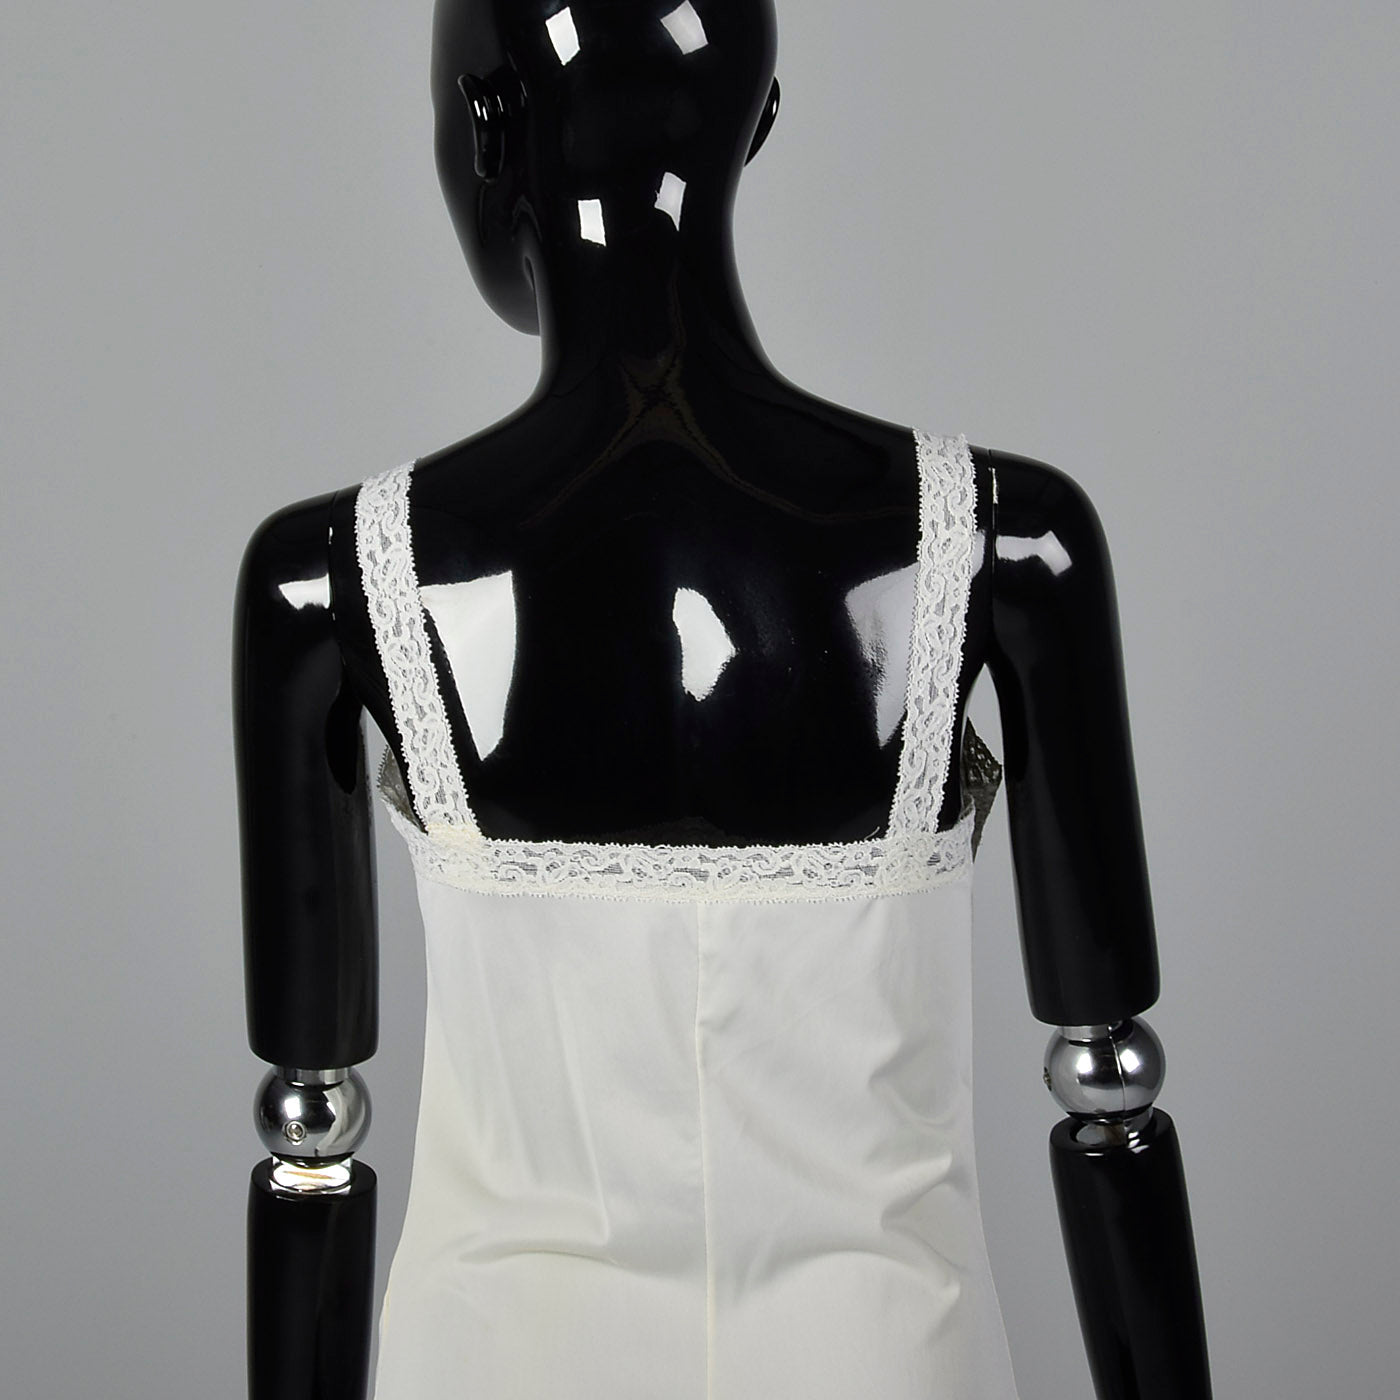 1970s Off White Camisole with Lace Trim